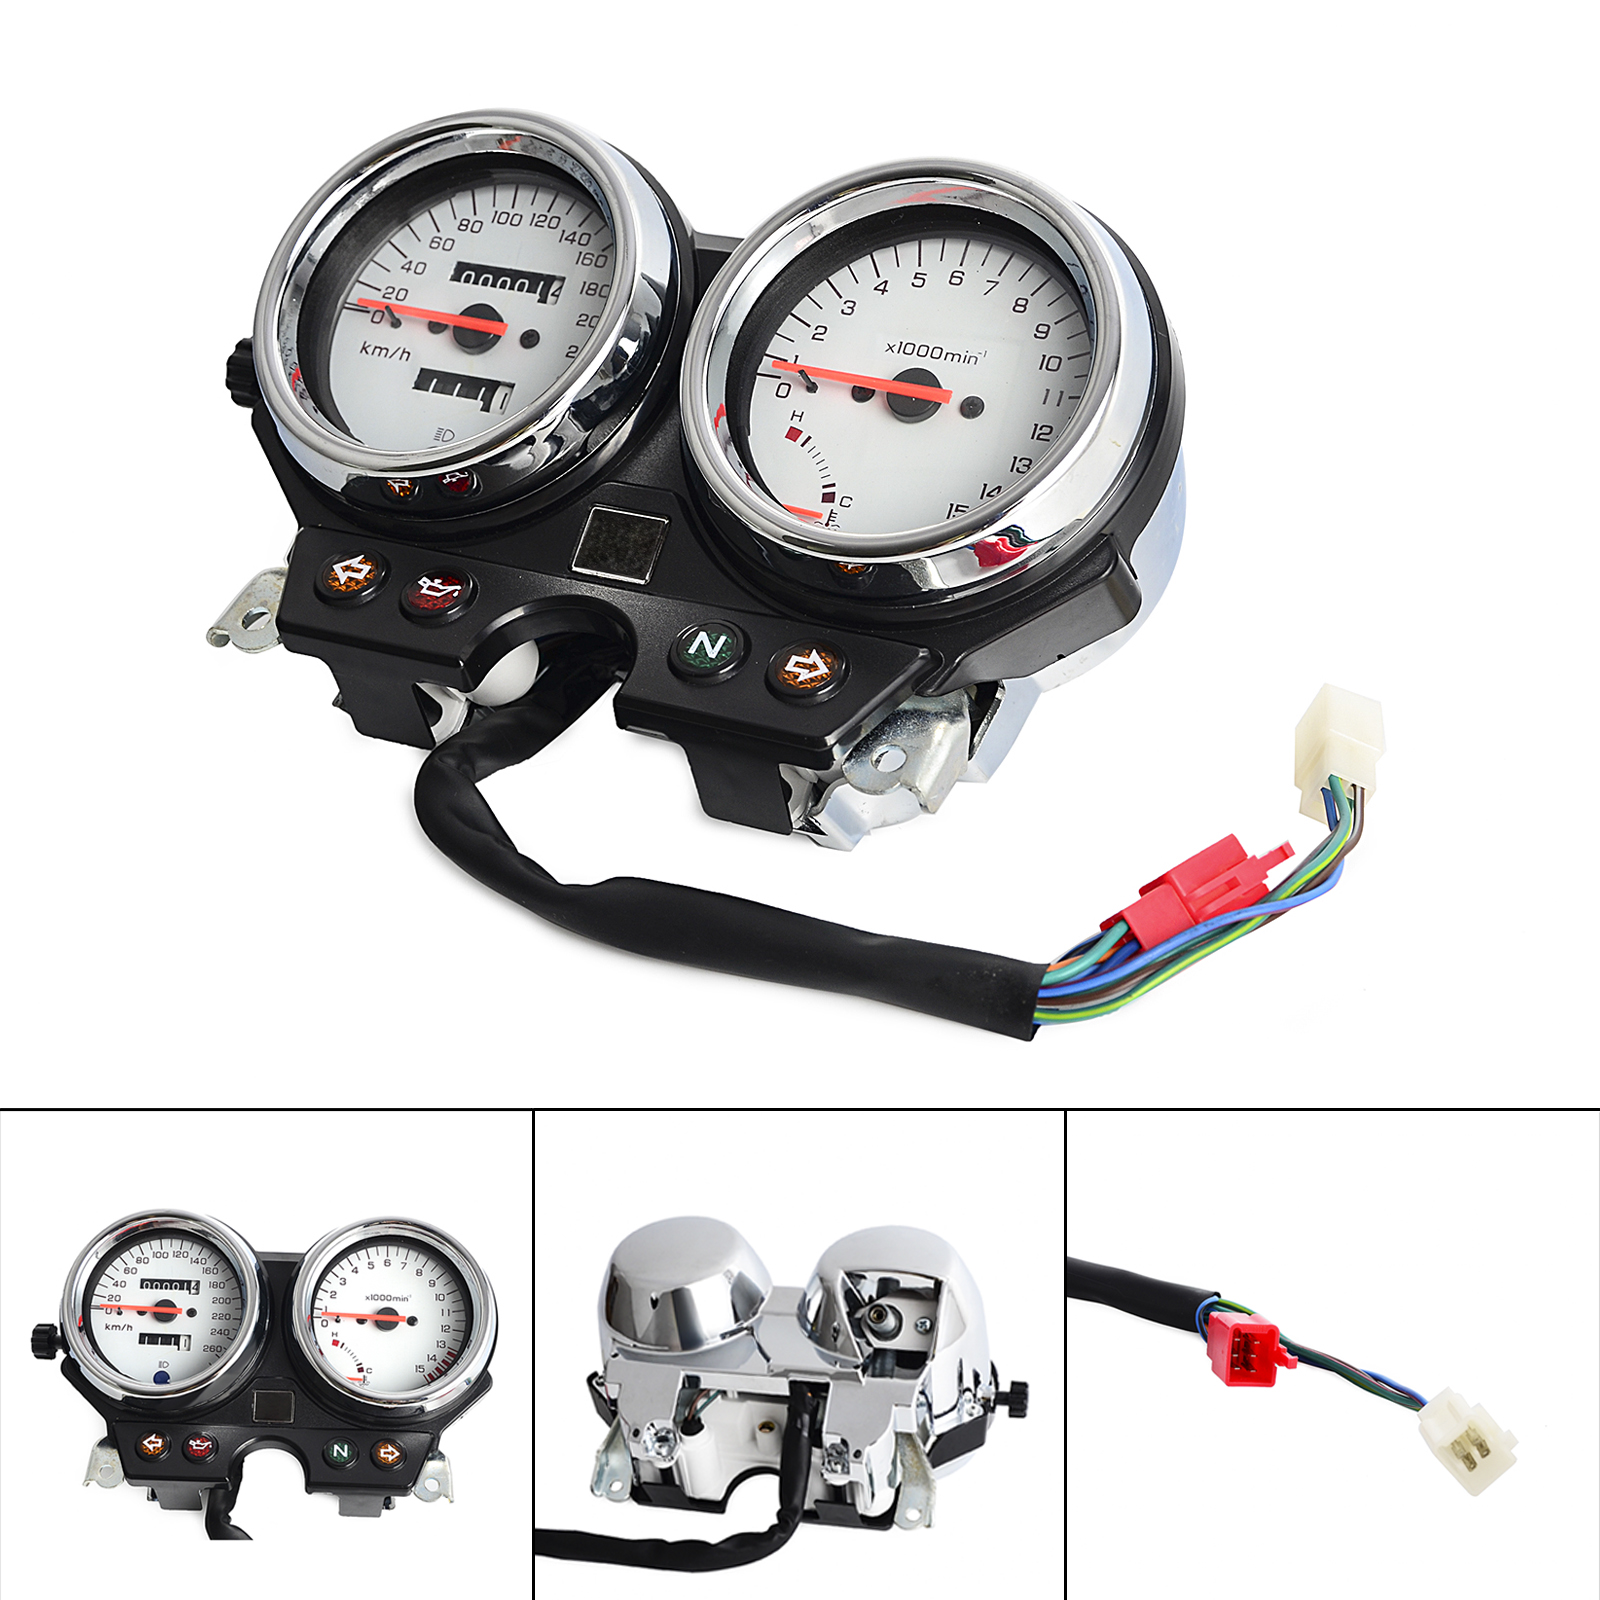 Motorcycle Gauge Cluster Speedometer For Honda CB600 Hornet 600 1996 - 2002 1997 1998 1999 2000 2001 Hornet600 NEW